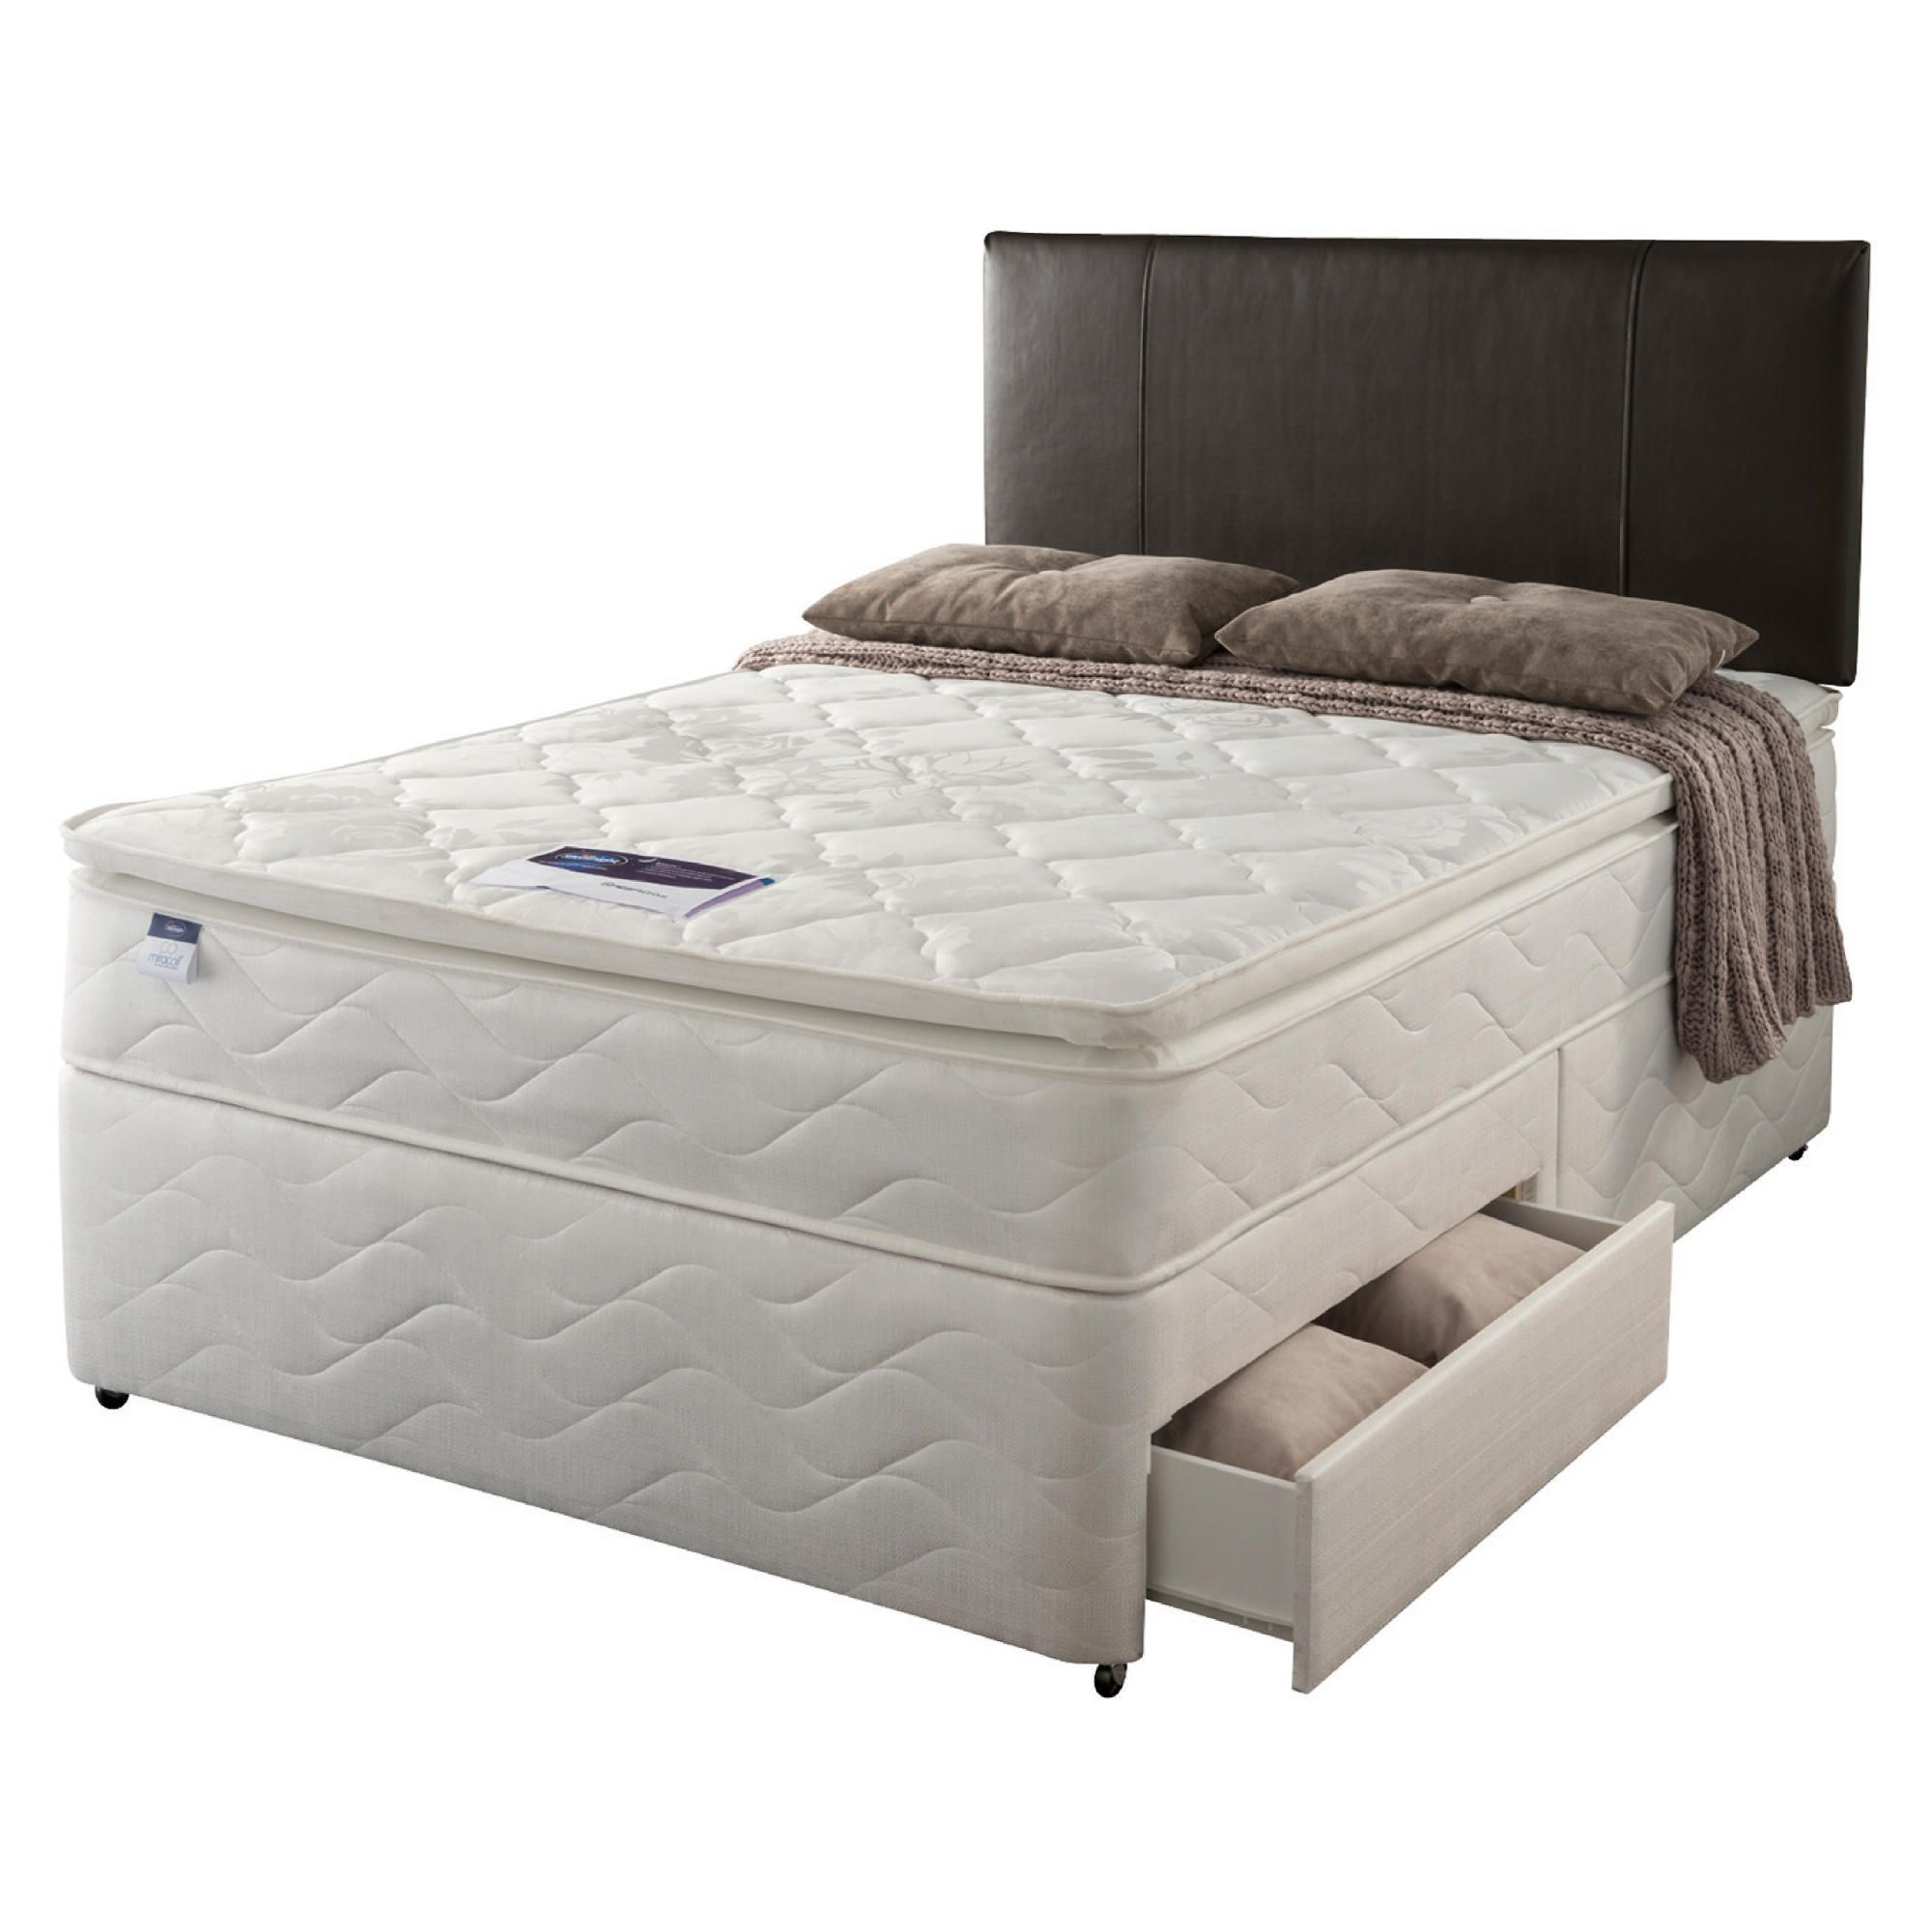 Silentnight Miracoil Pillowtop Fiji King 4 Drawer Divan set at Tesco Direct